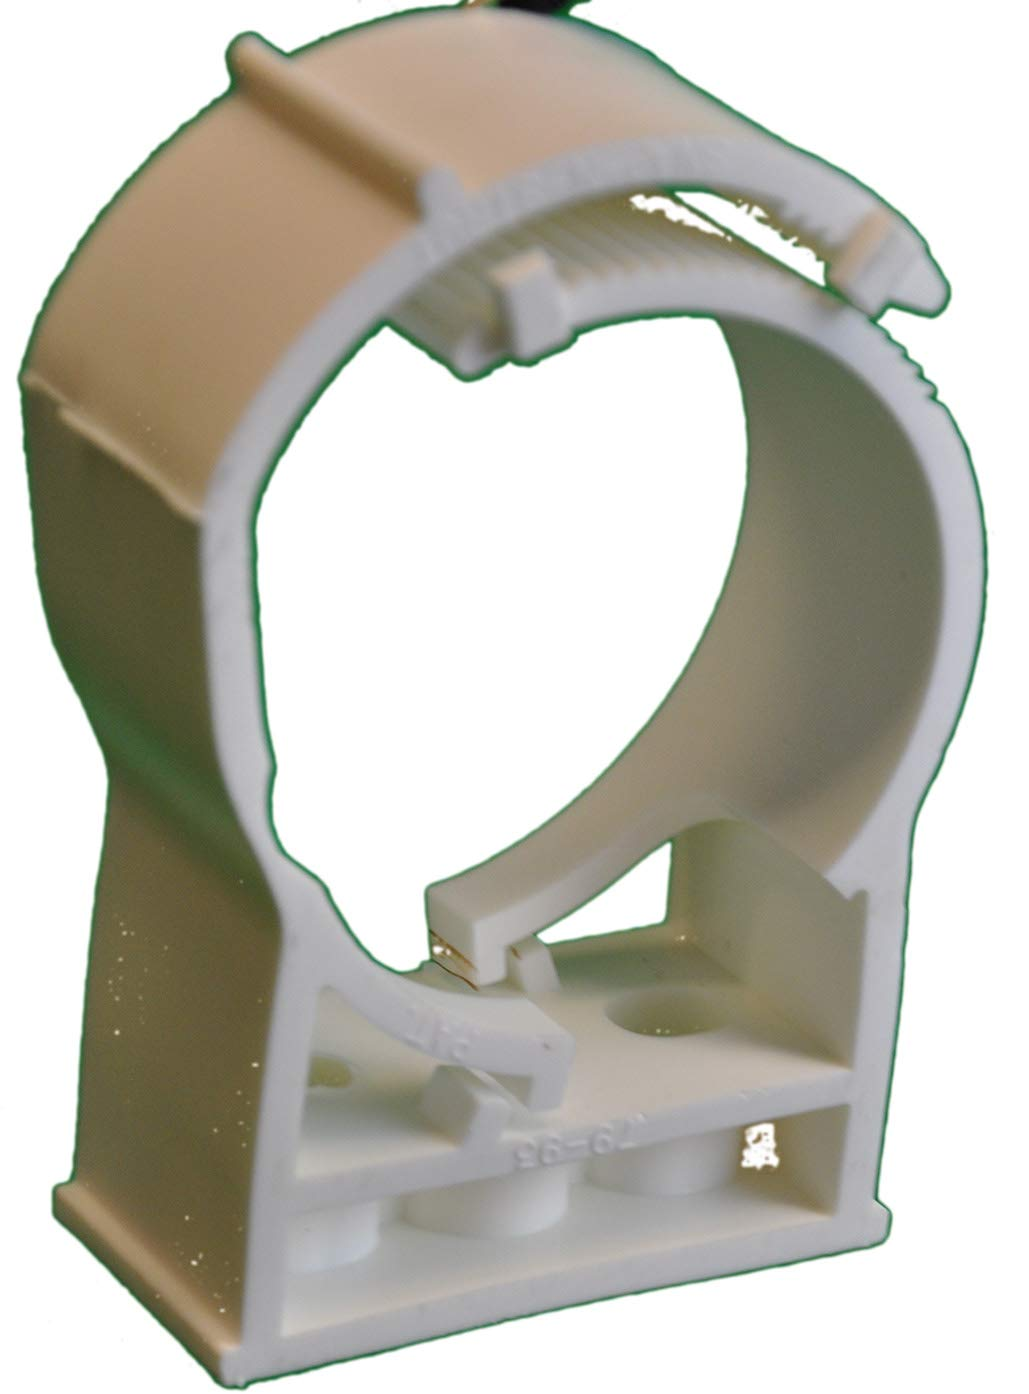 Snap N Strut Qty 12 White PP Pipe Hanger For 3 Inch EMT Conduit And Copper, And Sched 40 Pipe by Snap N Strut